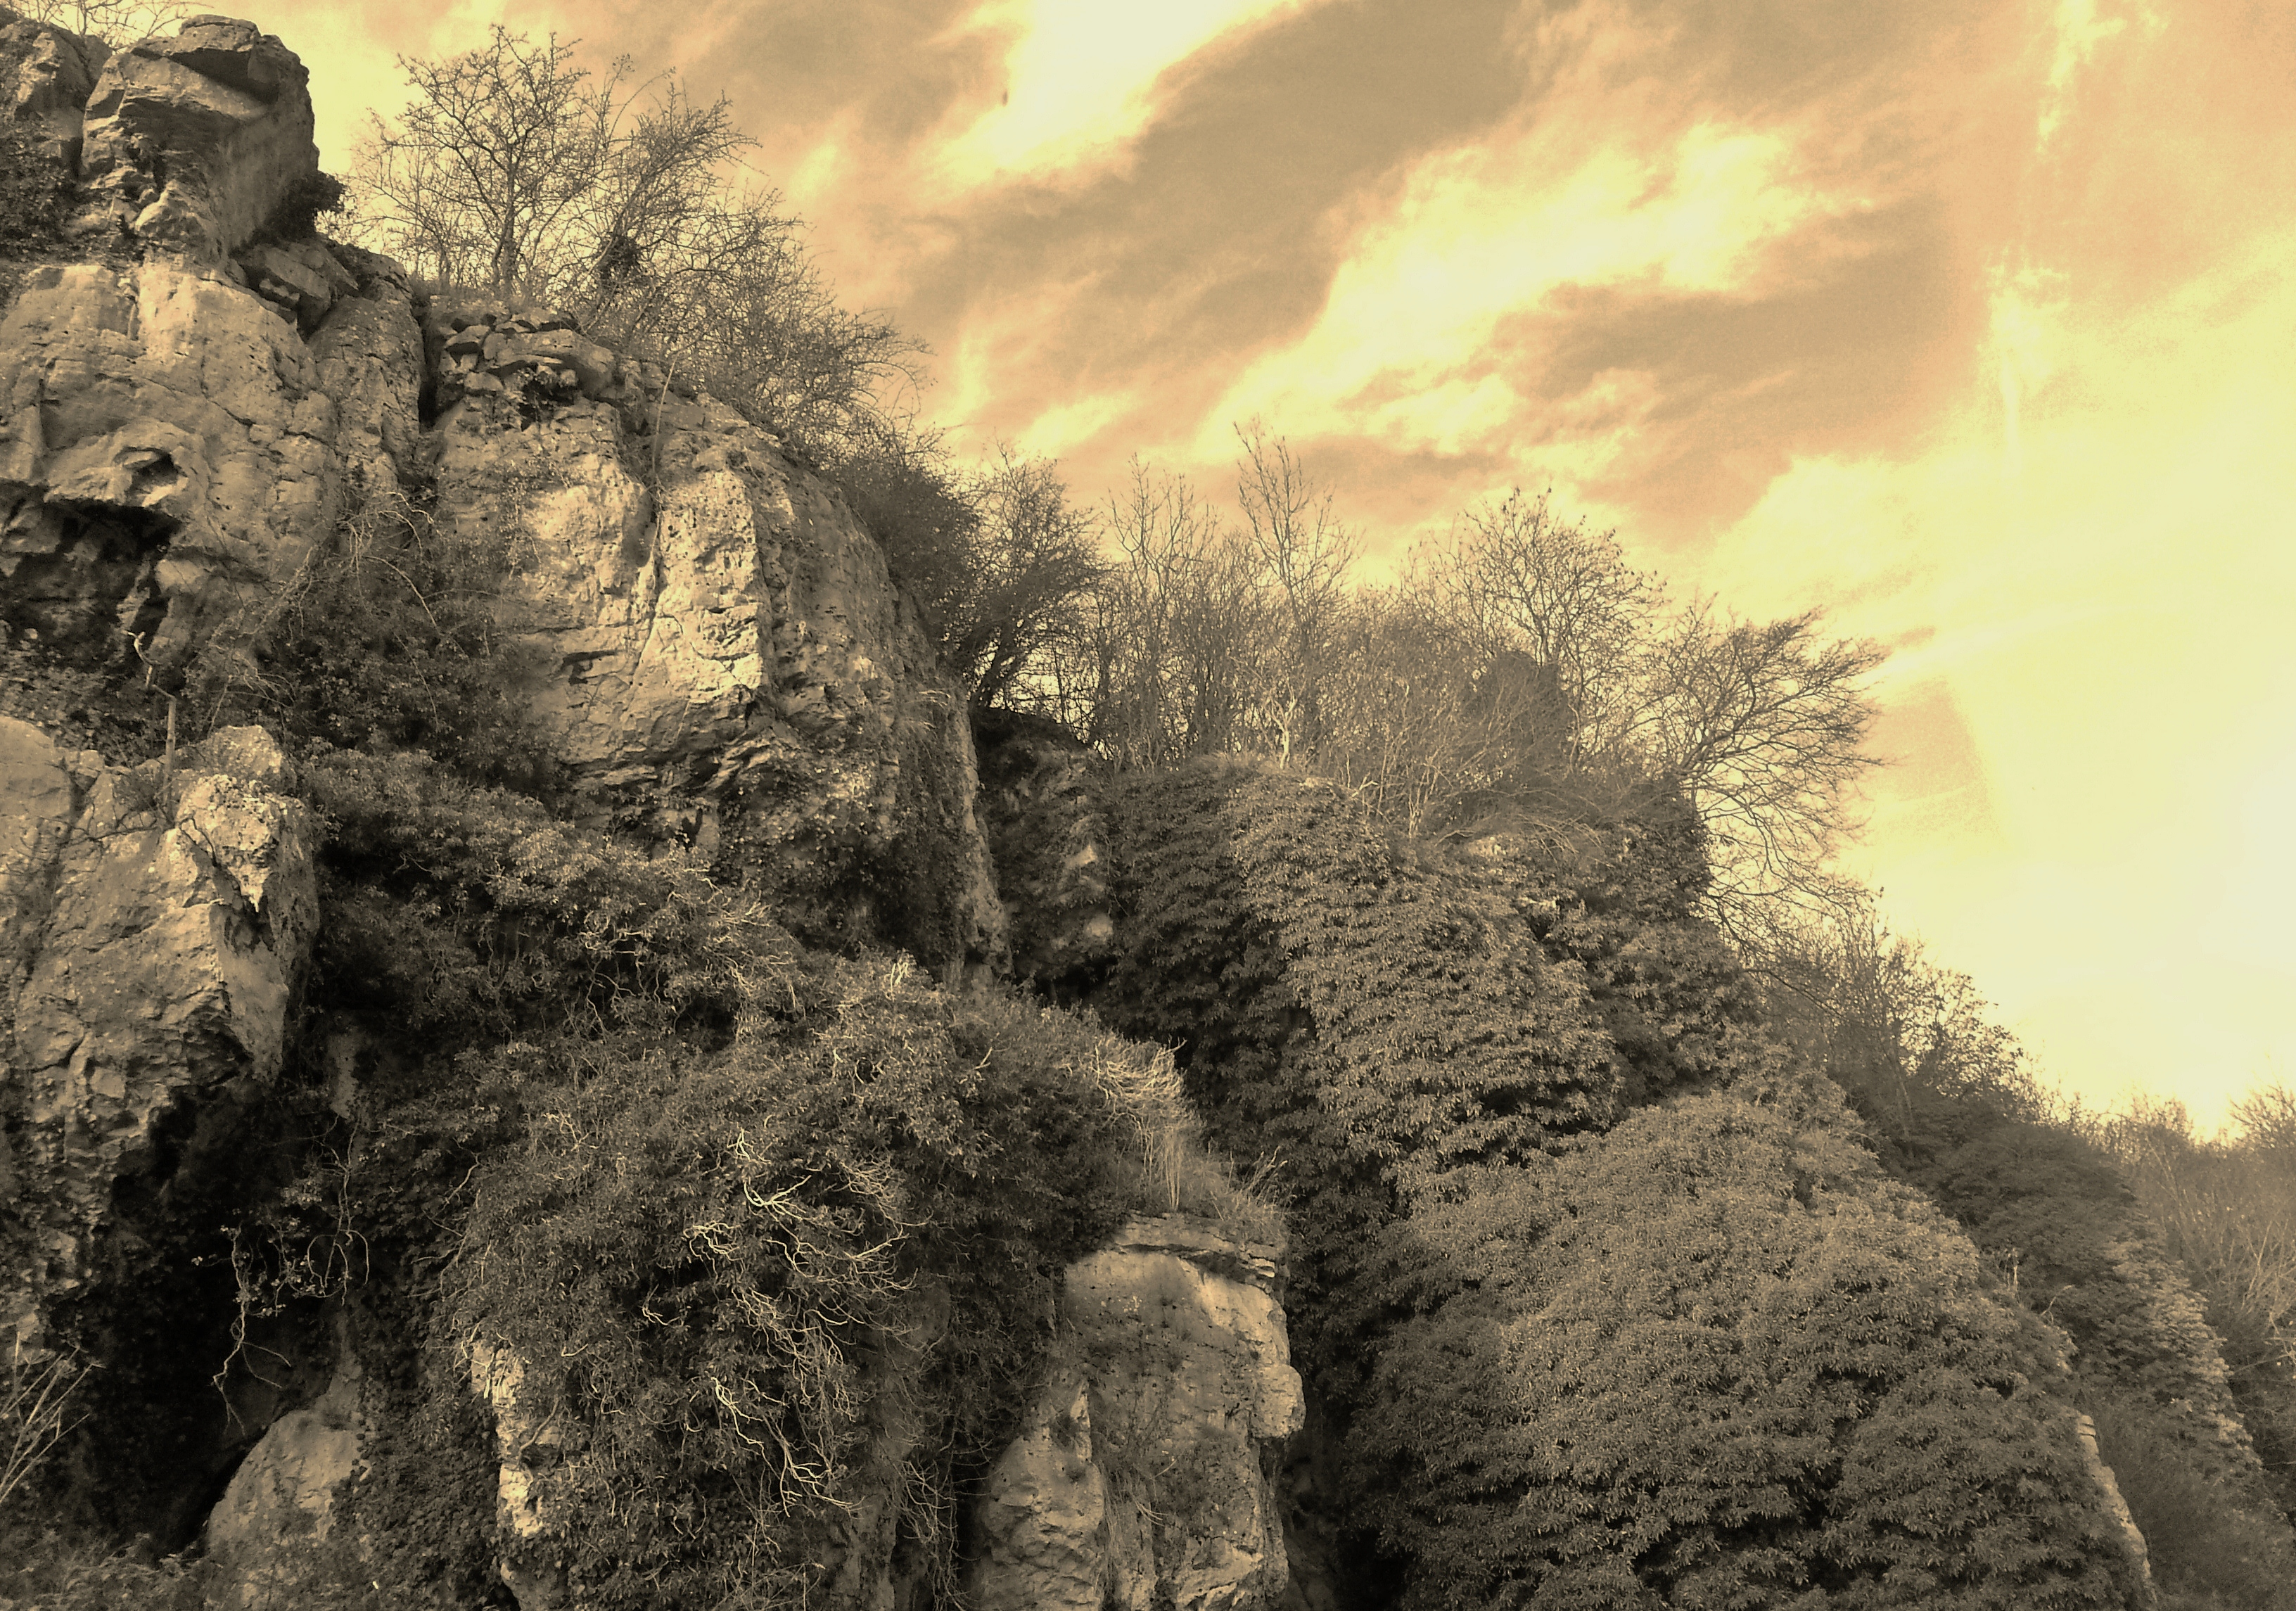 Creswell Crags Rocks 2 by sazzyarmani